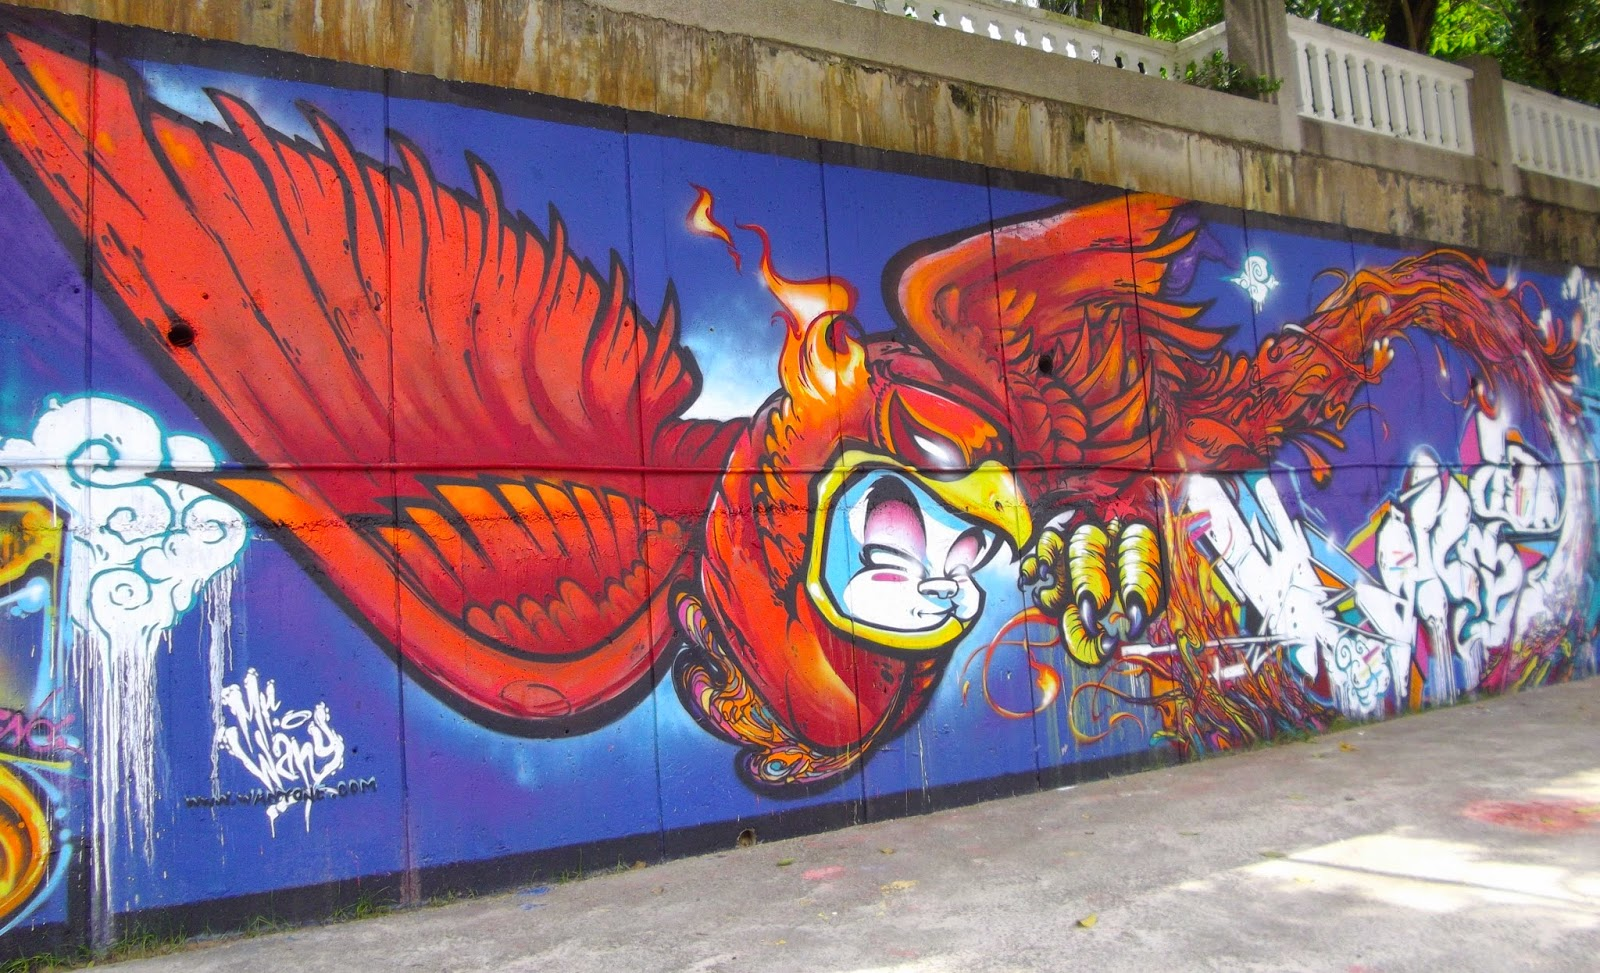 graffiti art Since 2008, the most engaging art has been right out there on the streets.